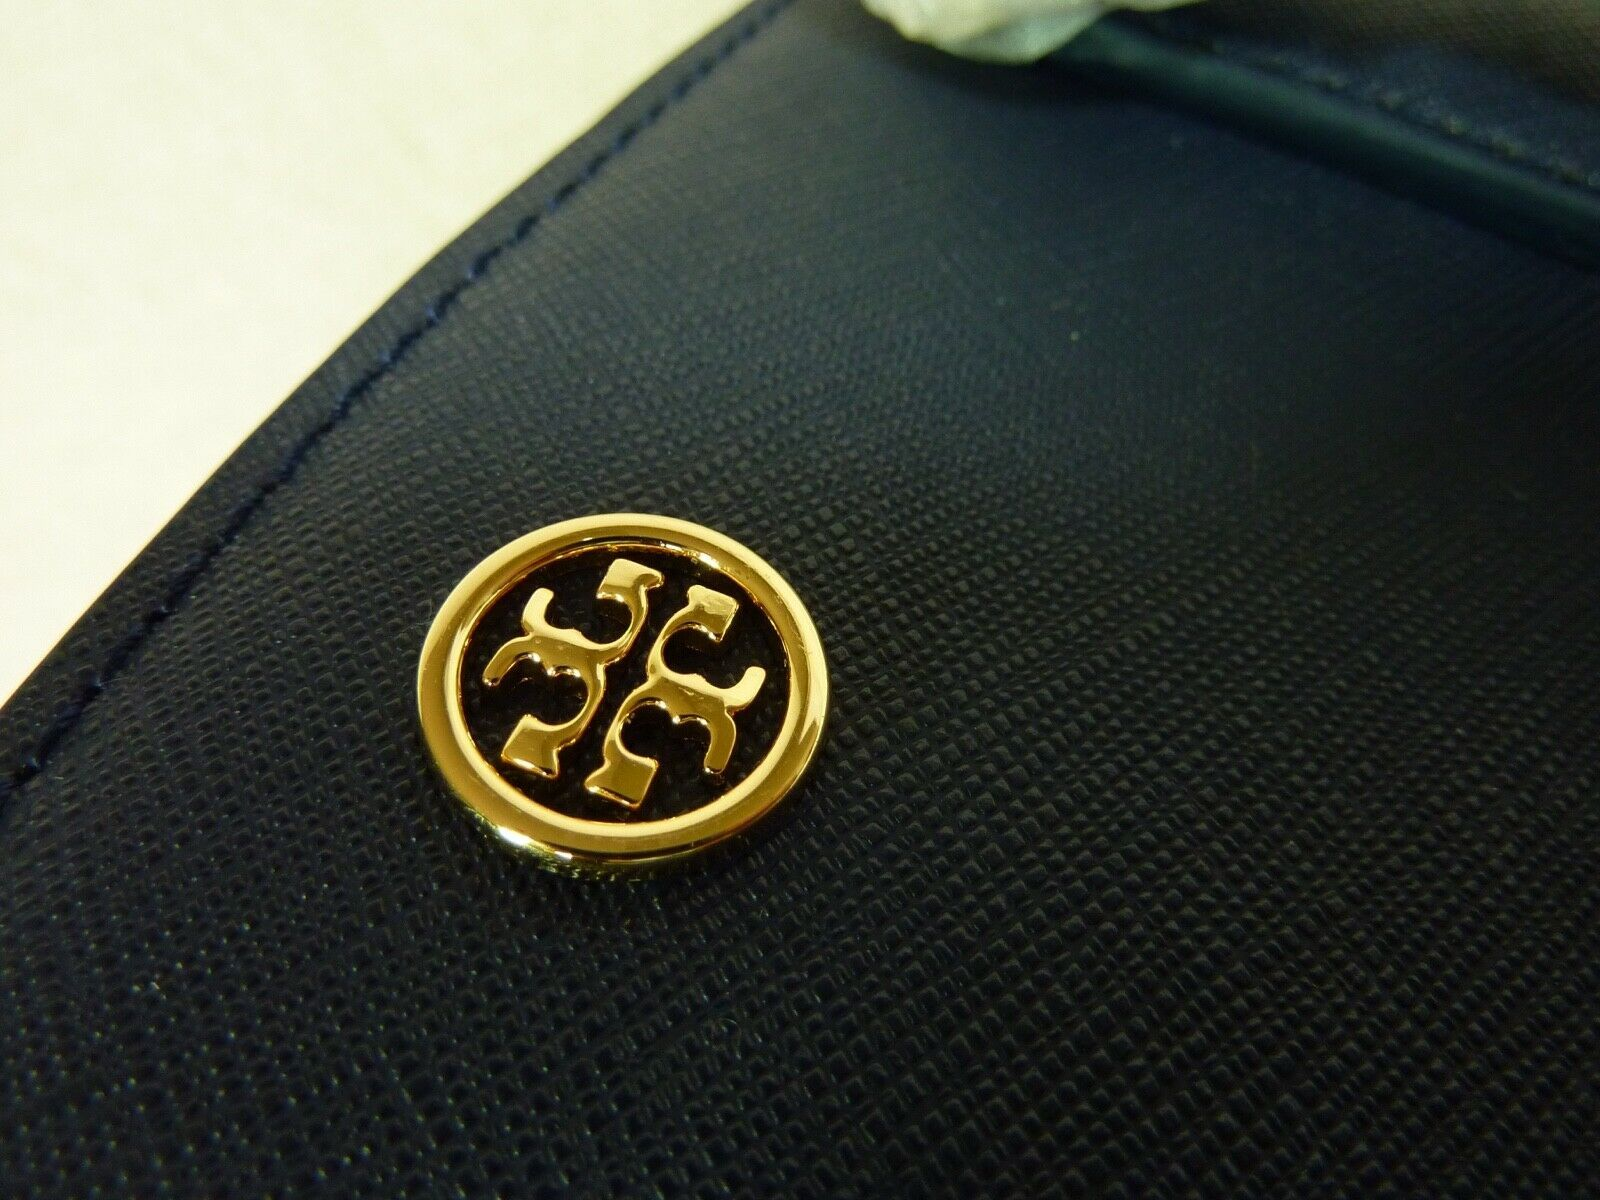 Nwt Tory Burch Navy Saffiano Leder Robinson Triple-Compartment Tote $ 458 image 7